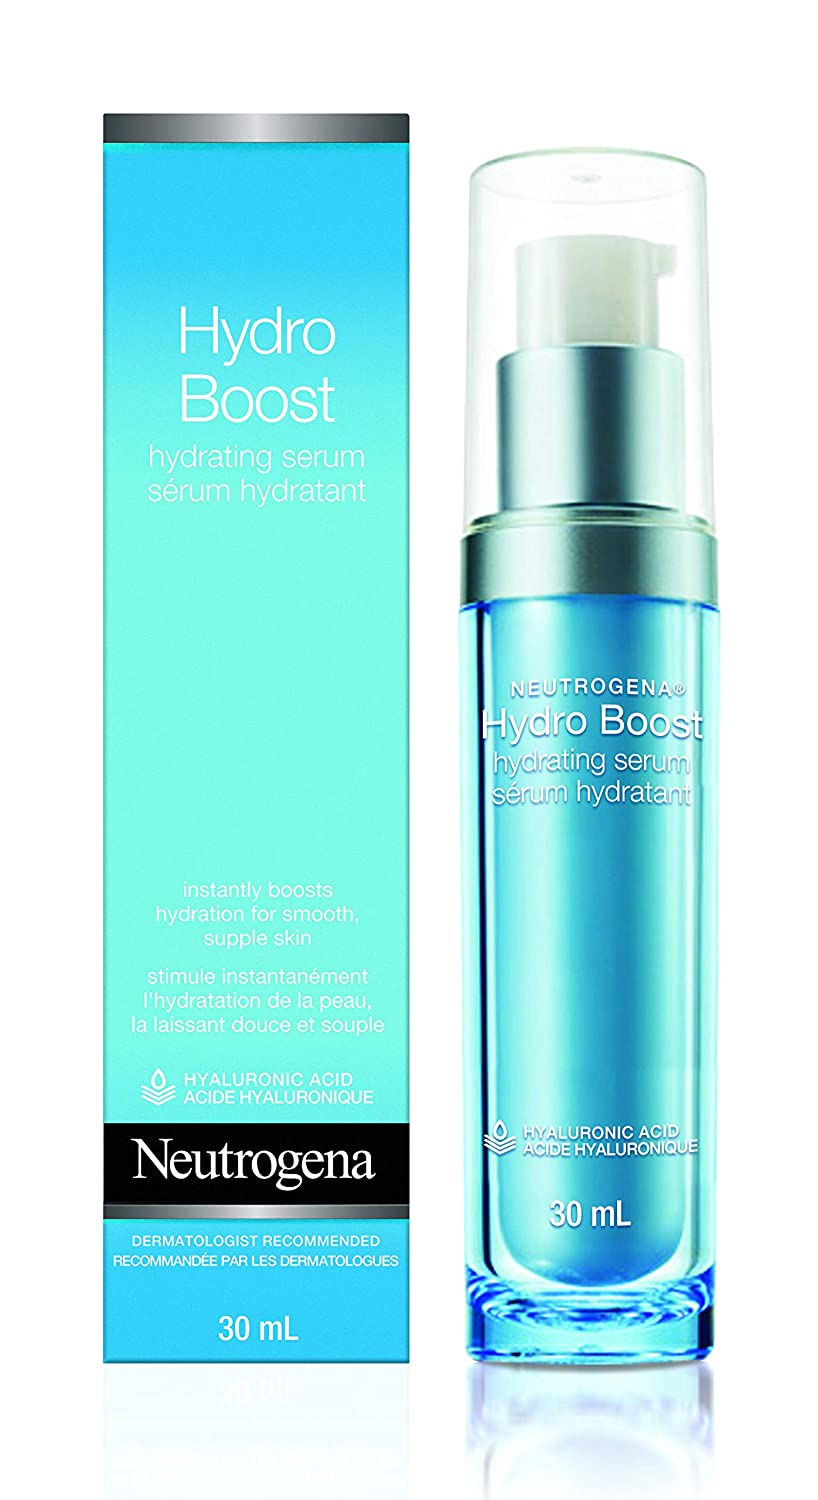 Neutrogena Moisturizer Hydro Boost Serum for Face With Hydrating Hyaluronic Acid, Non-comedogenic and Oil-free, 30ml Johnson & Johnson